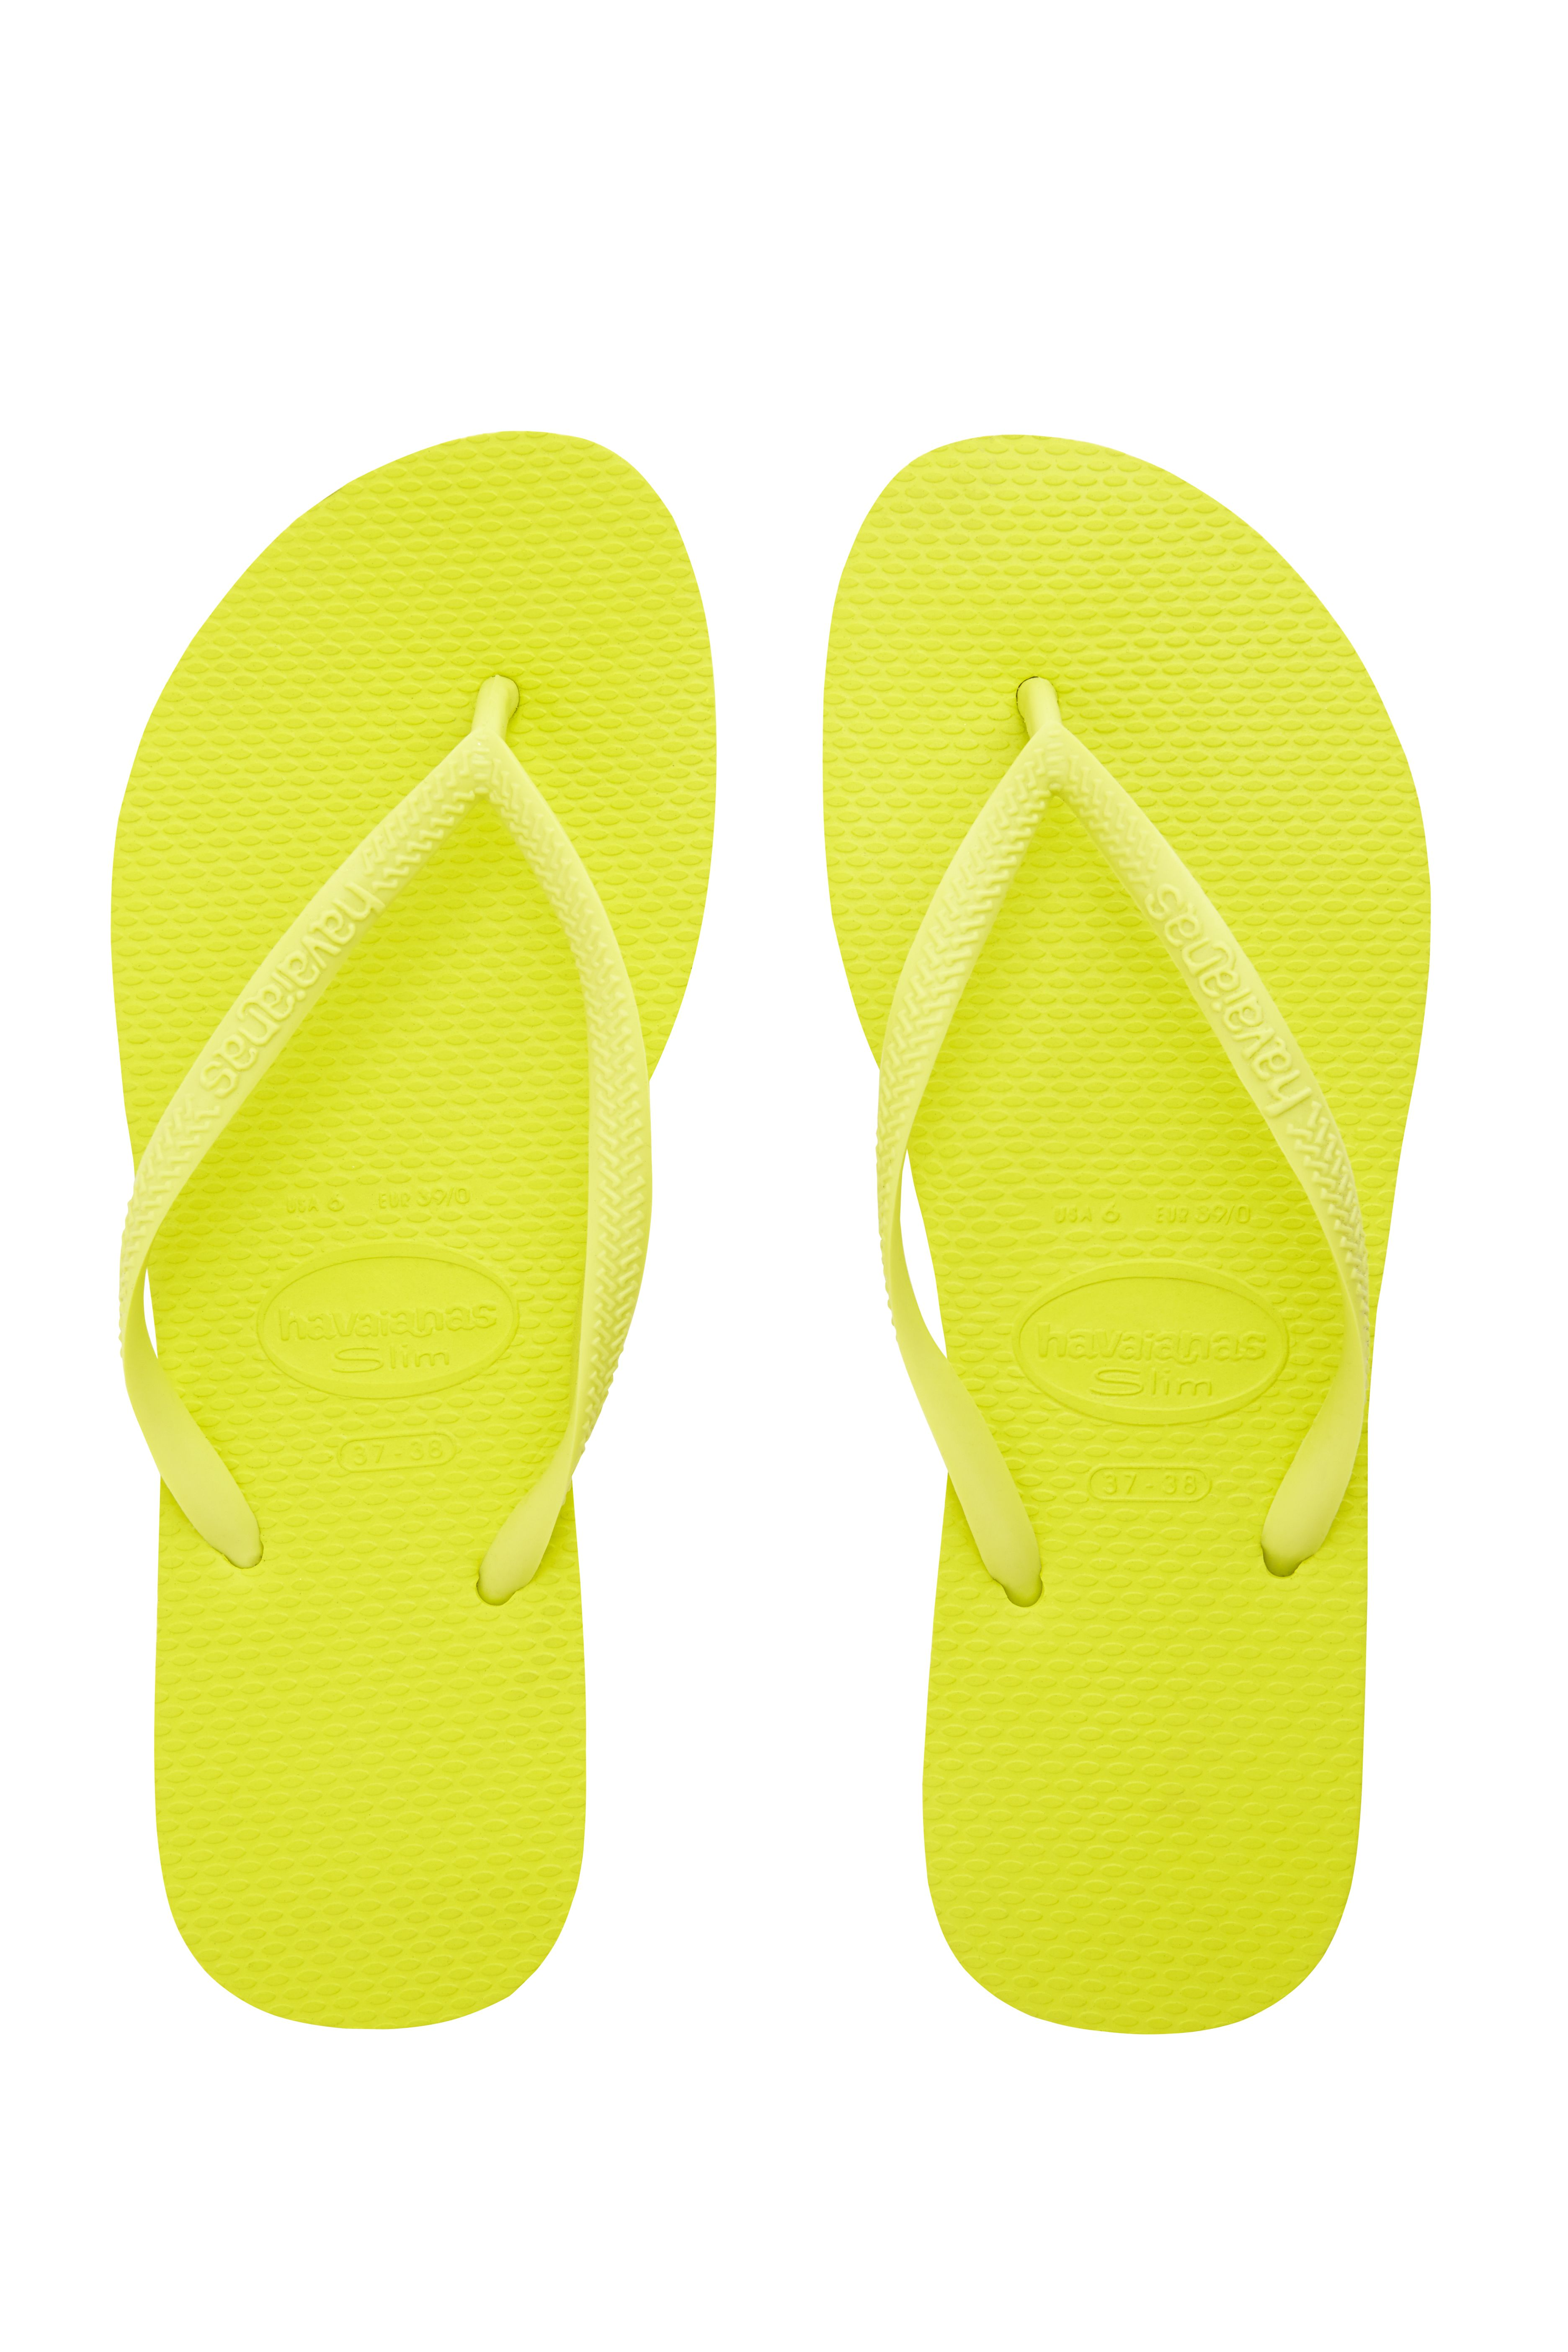 eb0afc908baa Introducing Havaianas for J. Crew! Check out exclusive colors (like fresh  kiwi) now available in store and online!